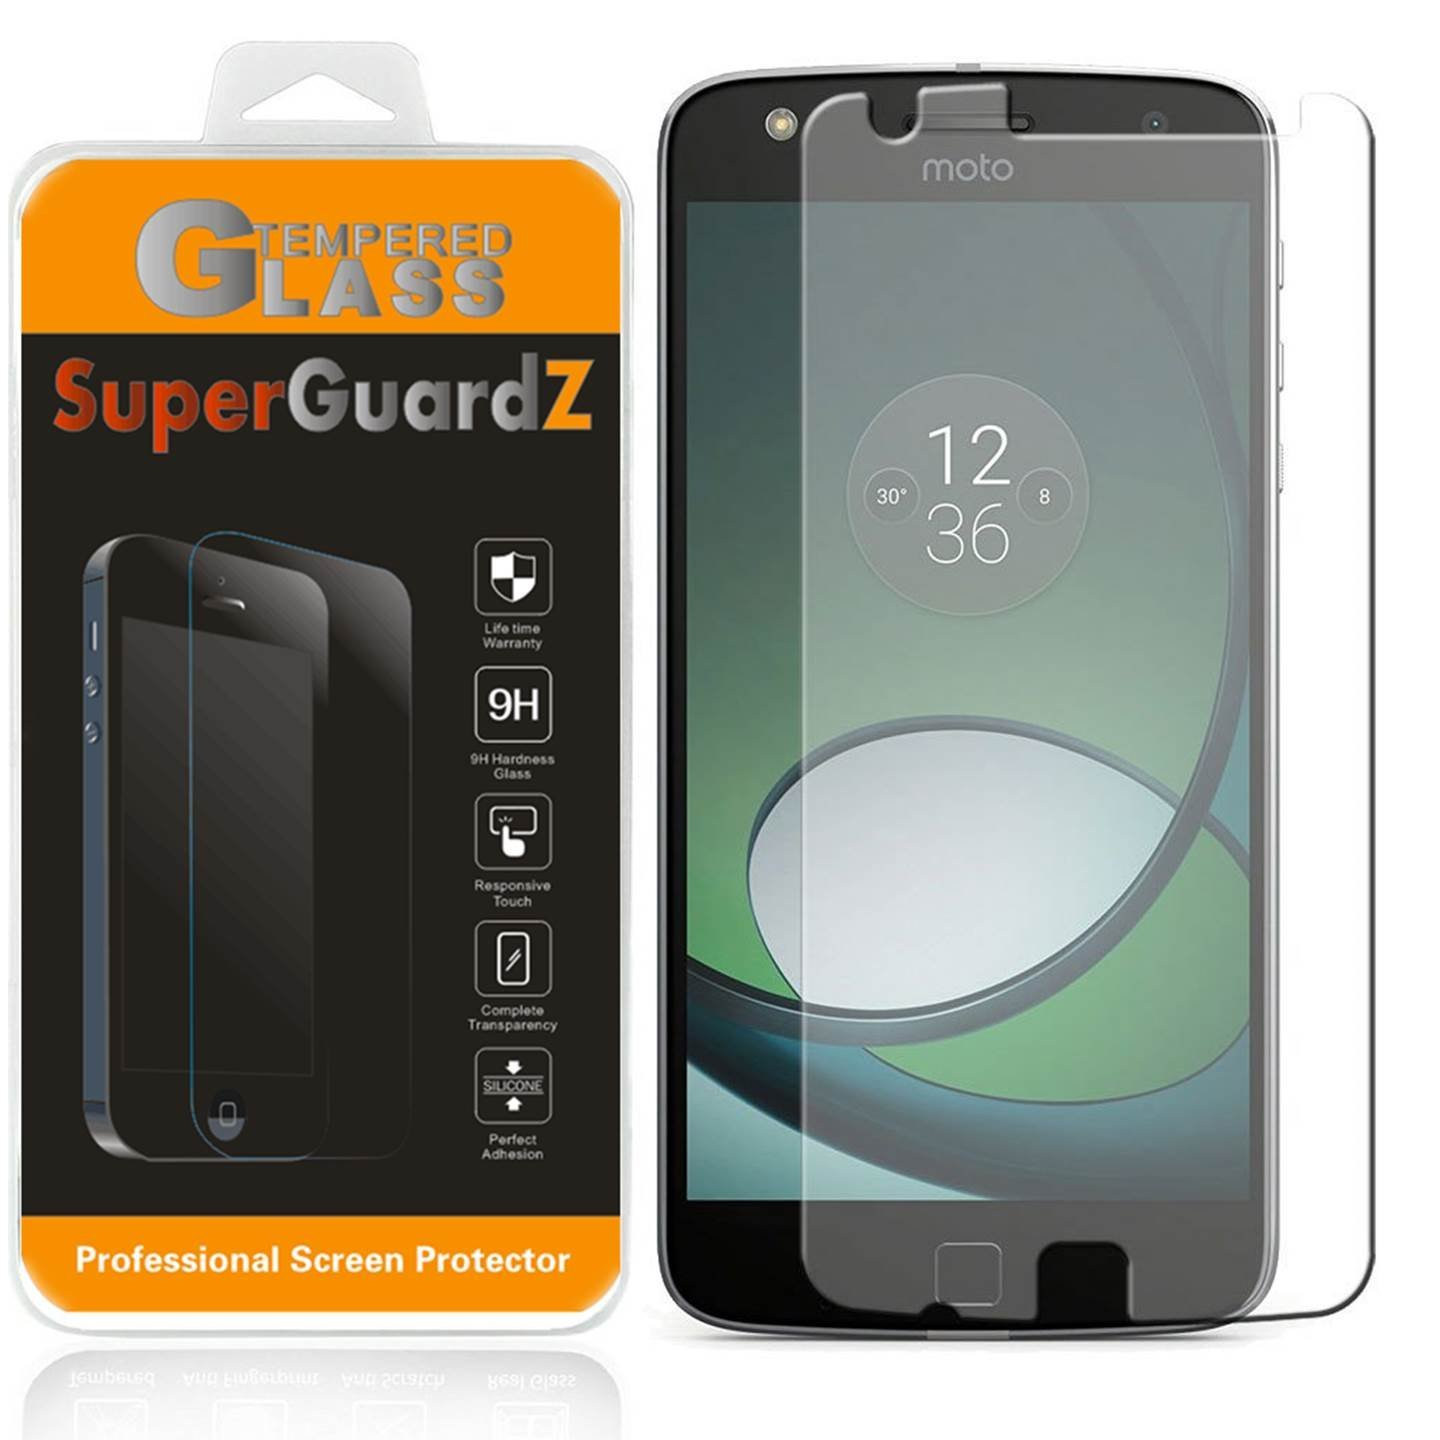 [3-Pack] For Motorola Moto Z Play Droid / Moto Z Play - SuperGuardZ Tempered Glass Screen Protector, 9H, Anti-Scratch, Anti-Bubble, Anti-Fingerprint